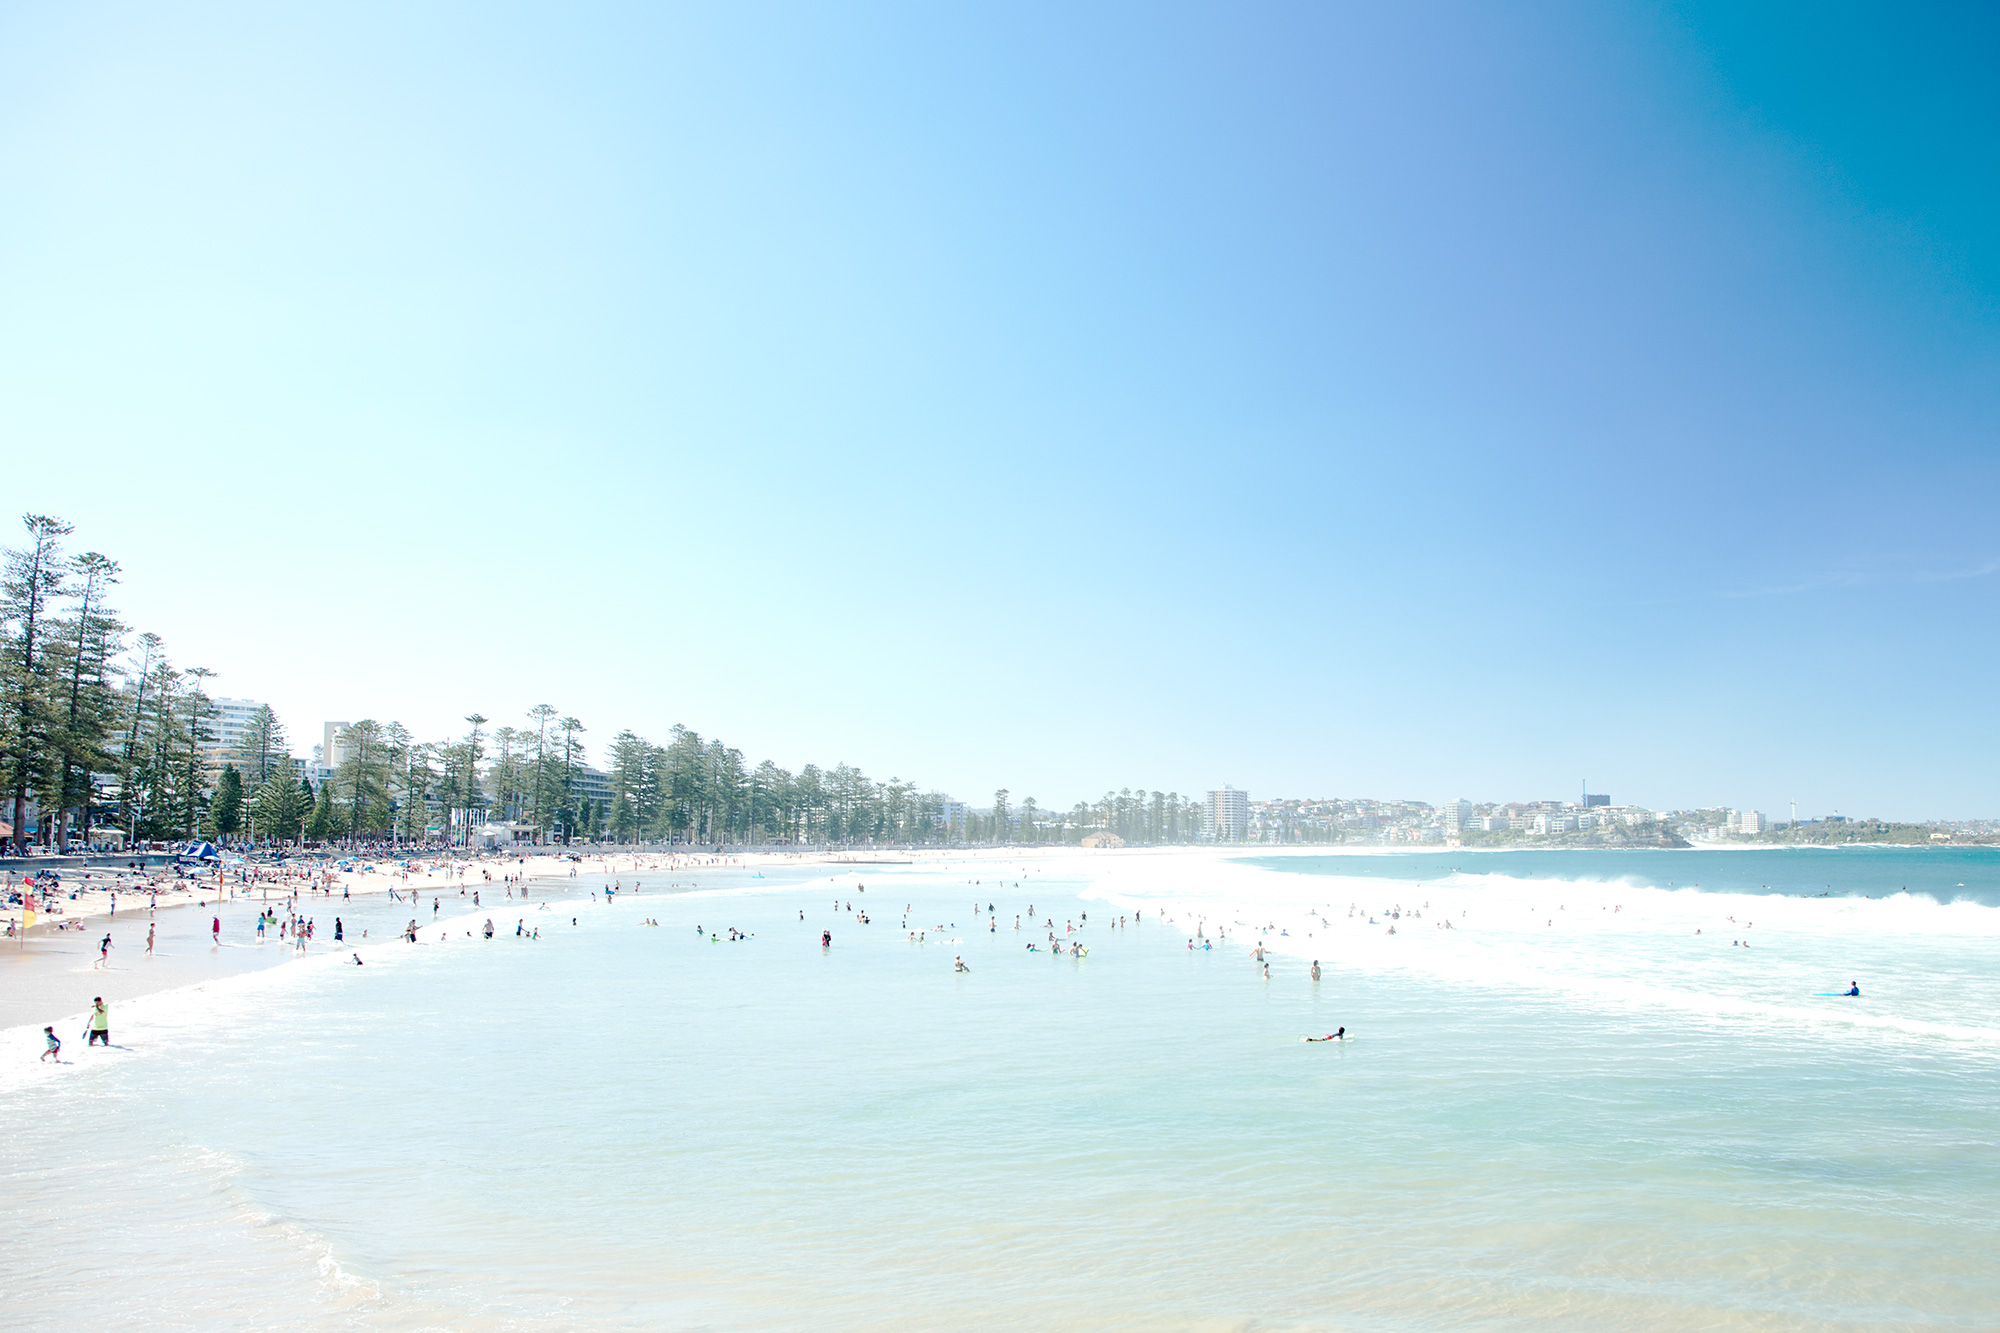 Manly, it's a bigger beach at 1.4 km long